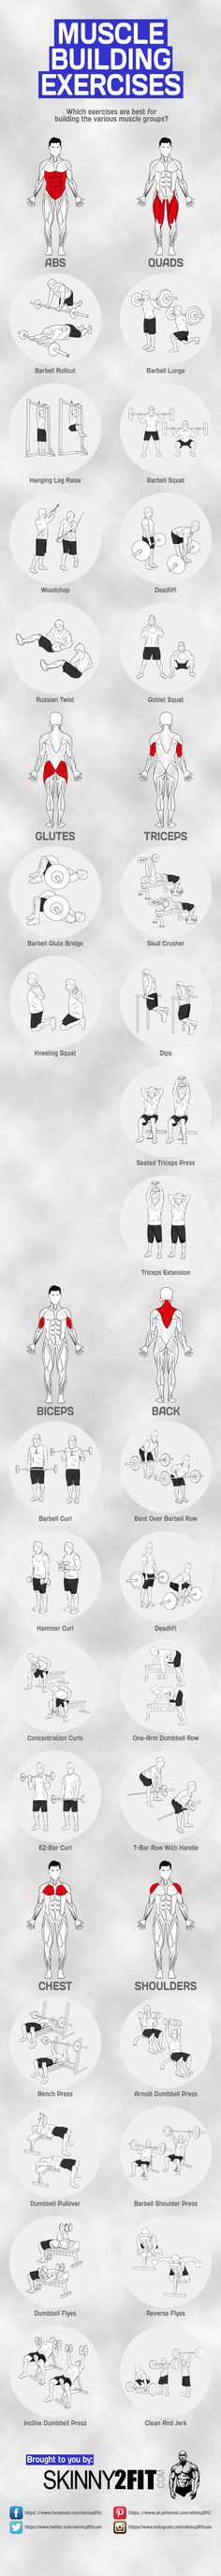 What are the top muscle building exercises for each muscle group? This graphic will show you the best exercises for serious strength and muscle gains. #bodybuilding #bodybuilder #strength #muscle #gains #swole #fitness #health